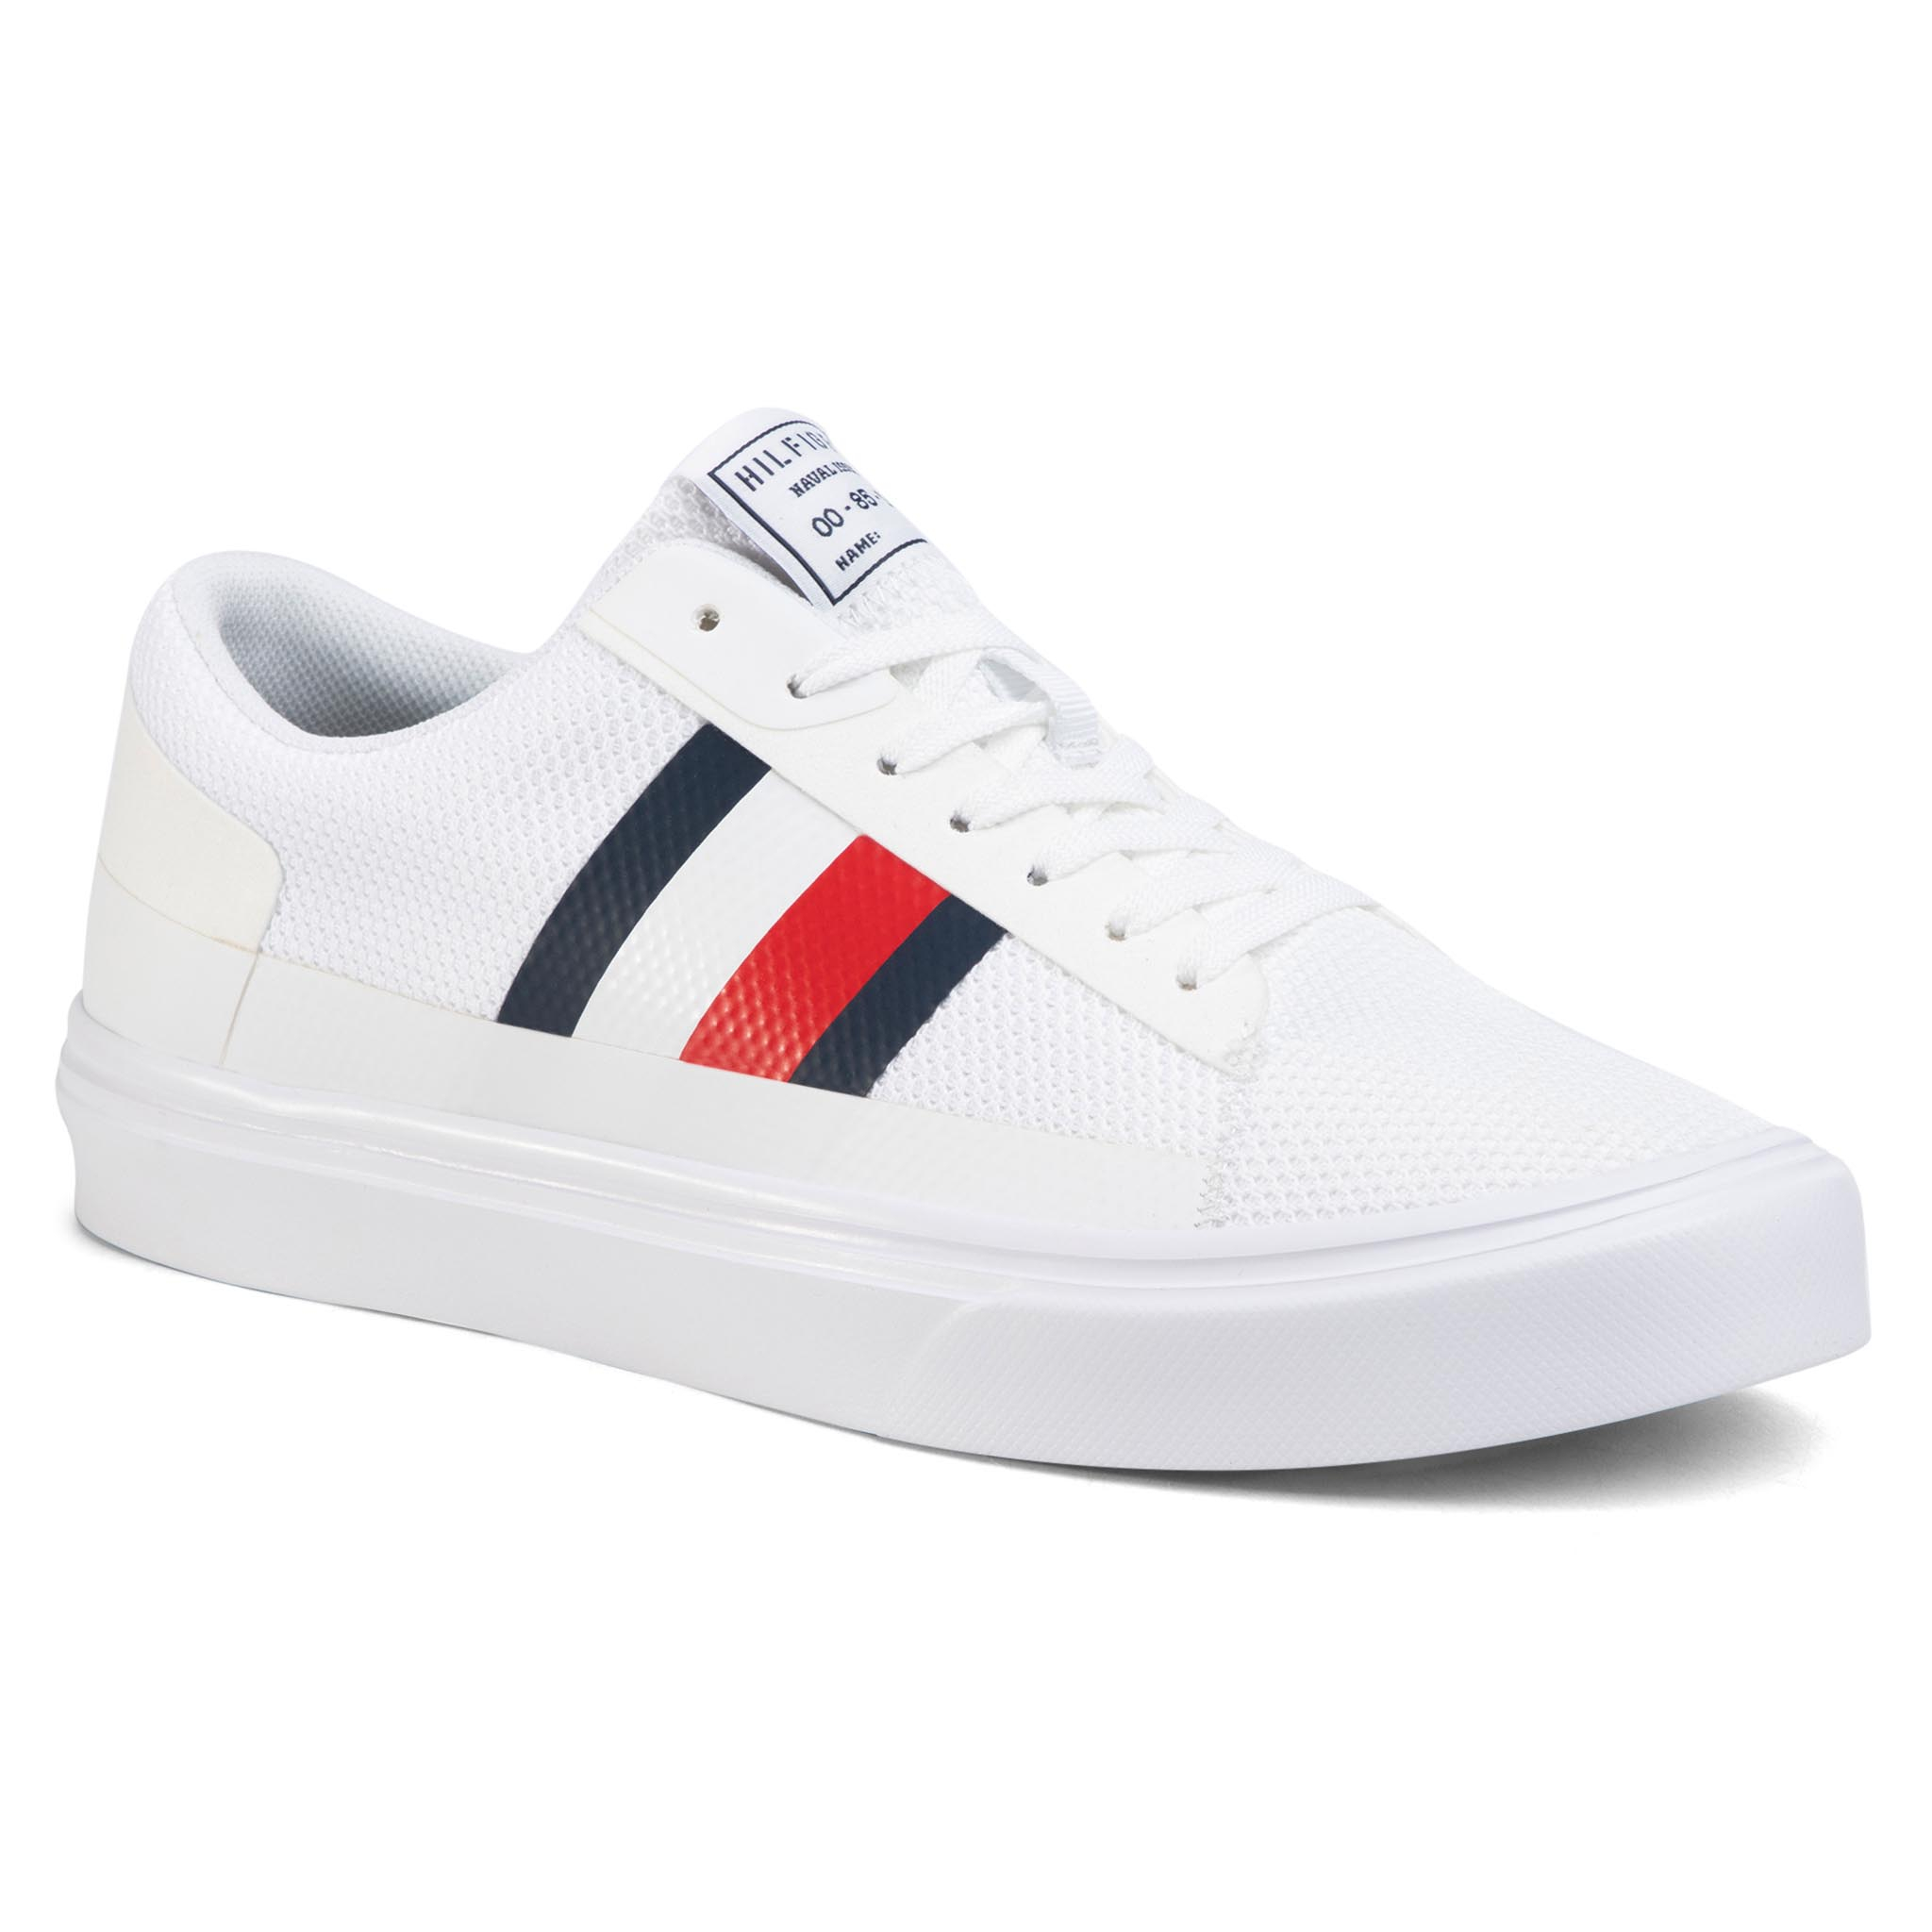 Sneakers TOMMY HILFIGER - Lightweight Stripes Knit Sneaker FM0FM02689 White YBS